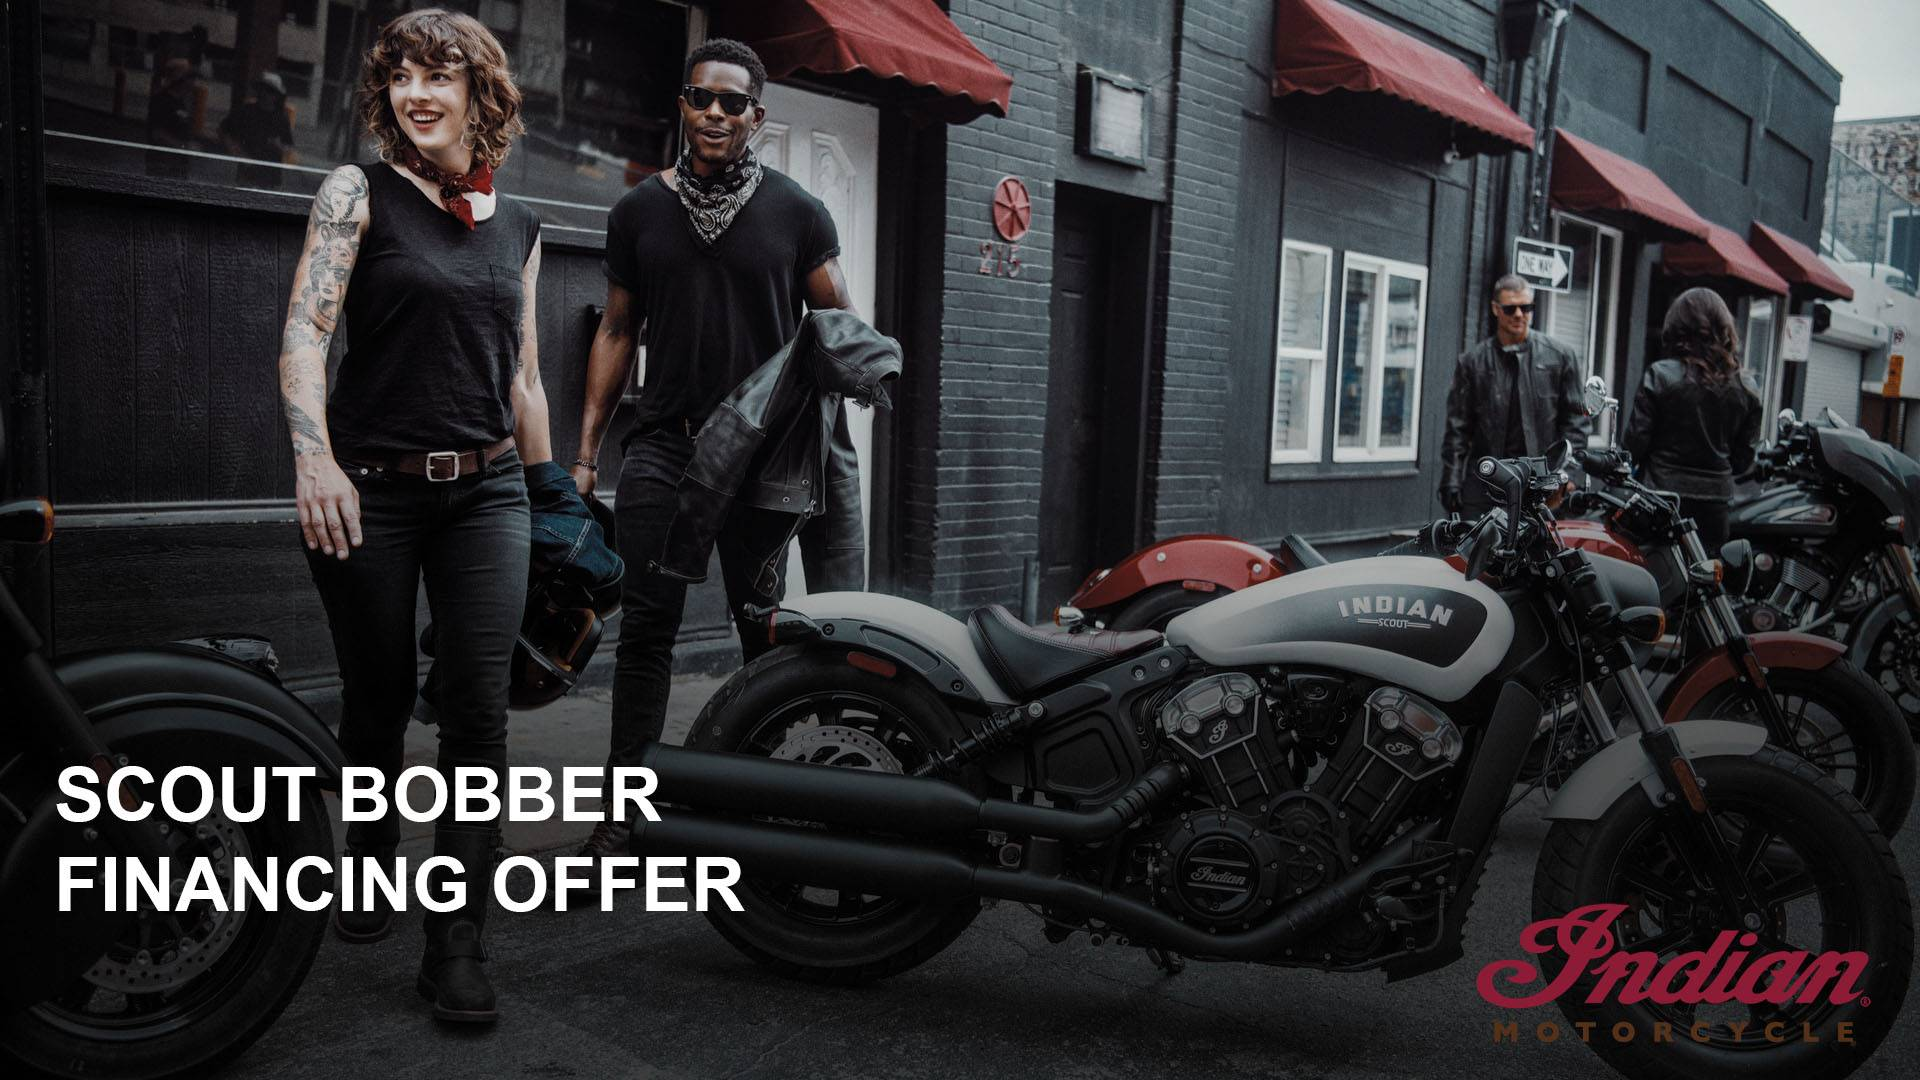 Indian - 2019 Scout Bobber Financing